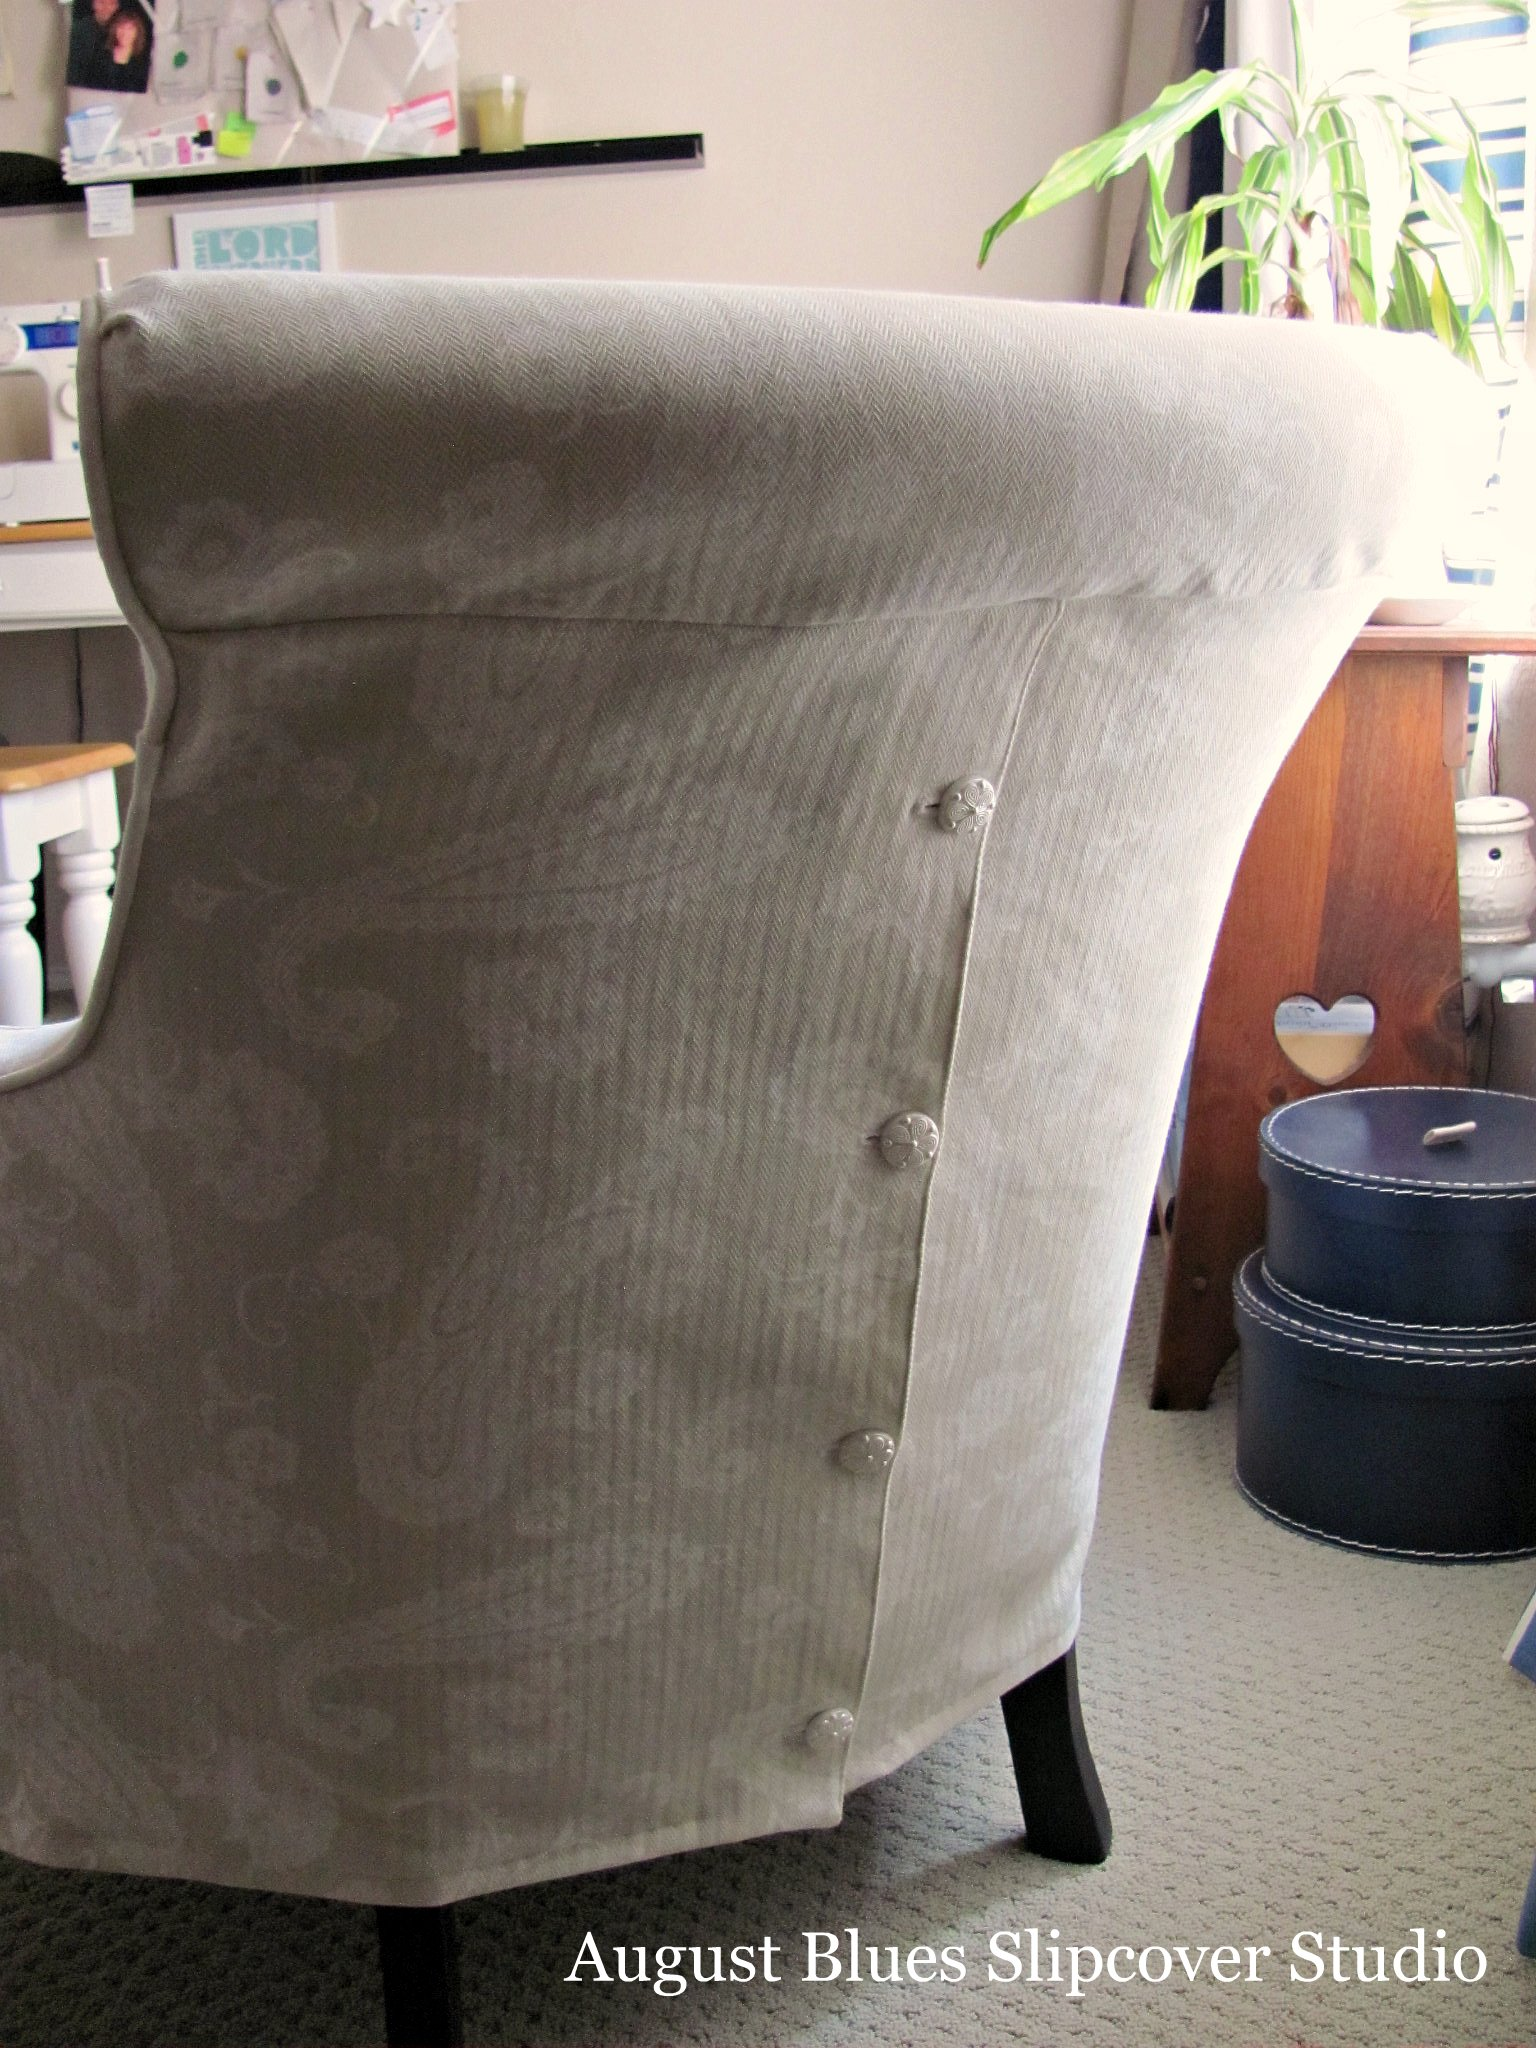 August Blues - Curvy Chair Buttons